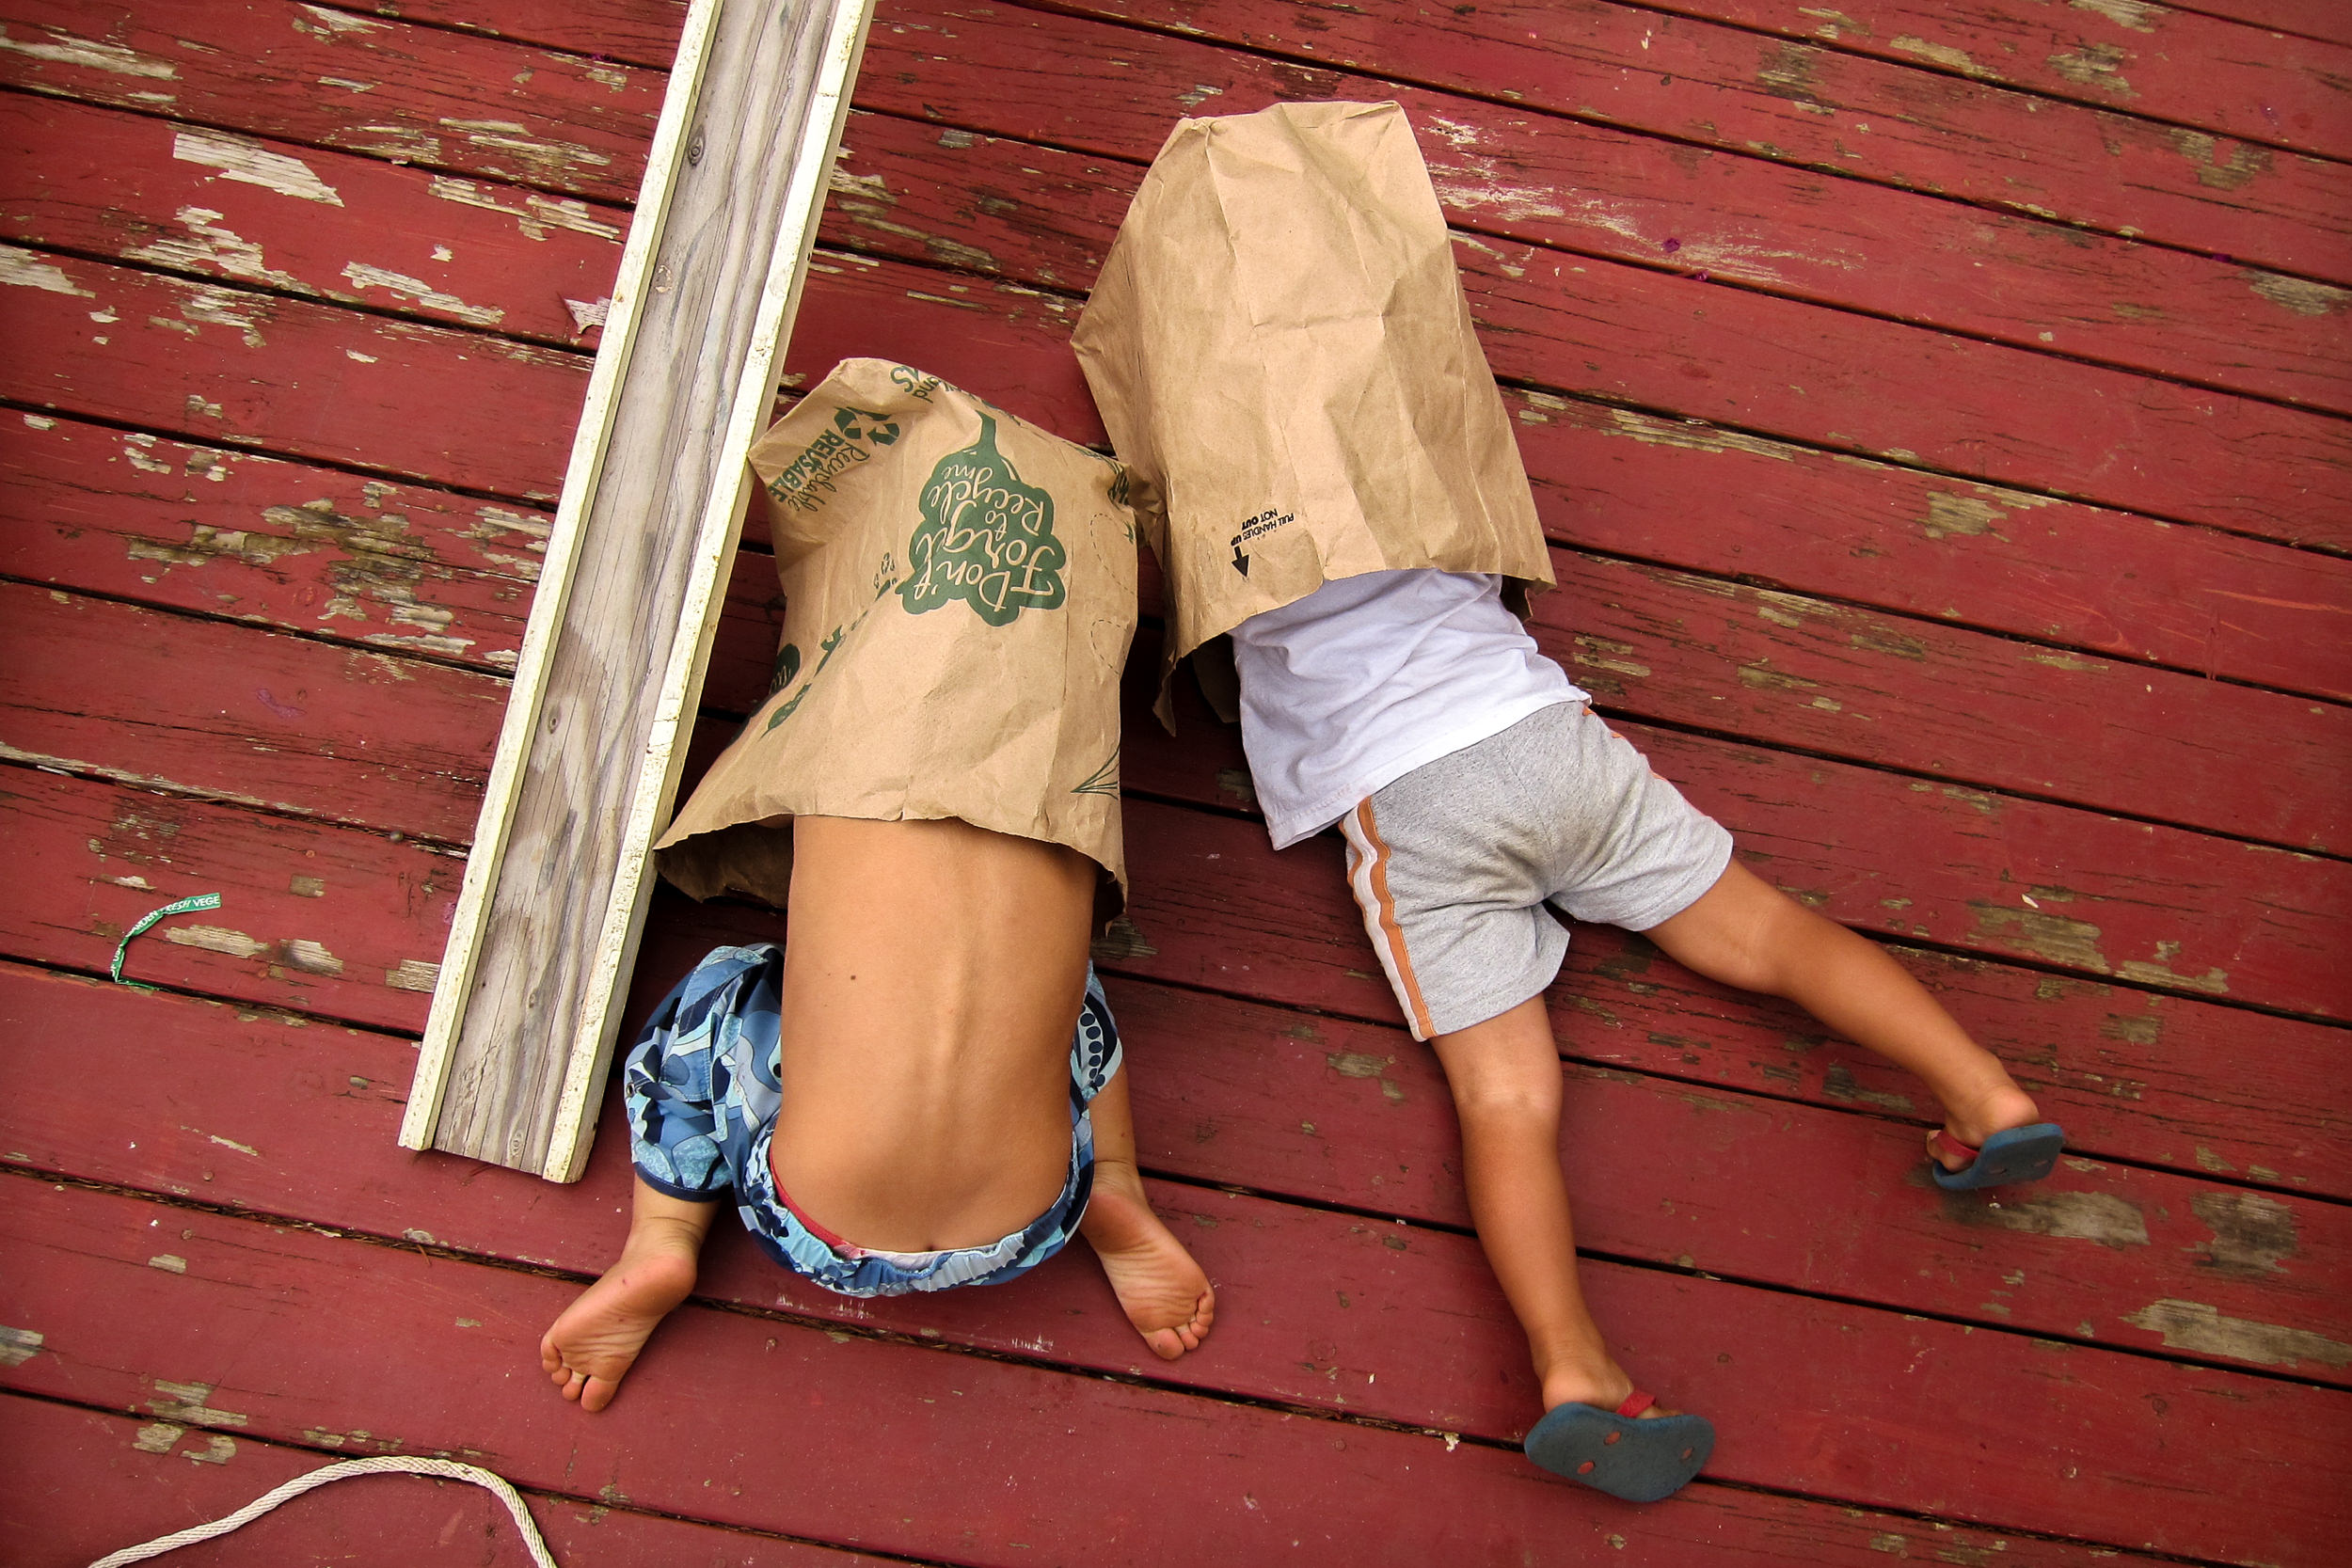 Molly Rees Photo - Documentary Childhood Photography - Overhead Portrait of two boys in paper bags by M. Menschel